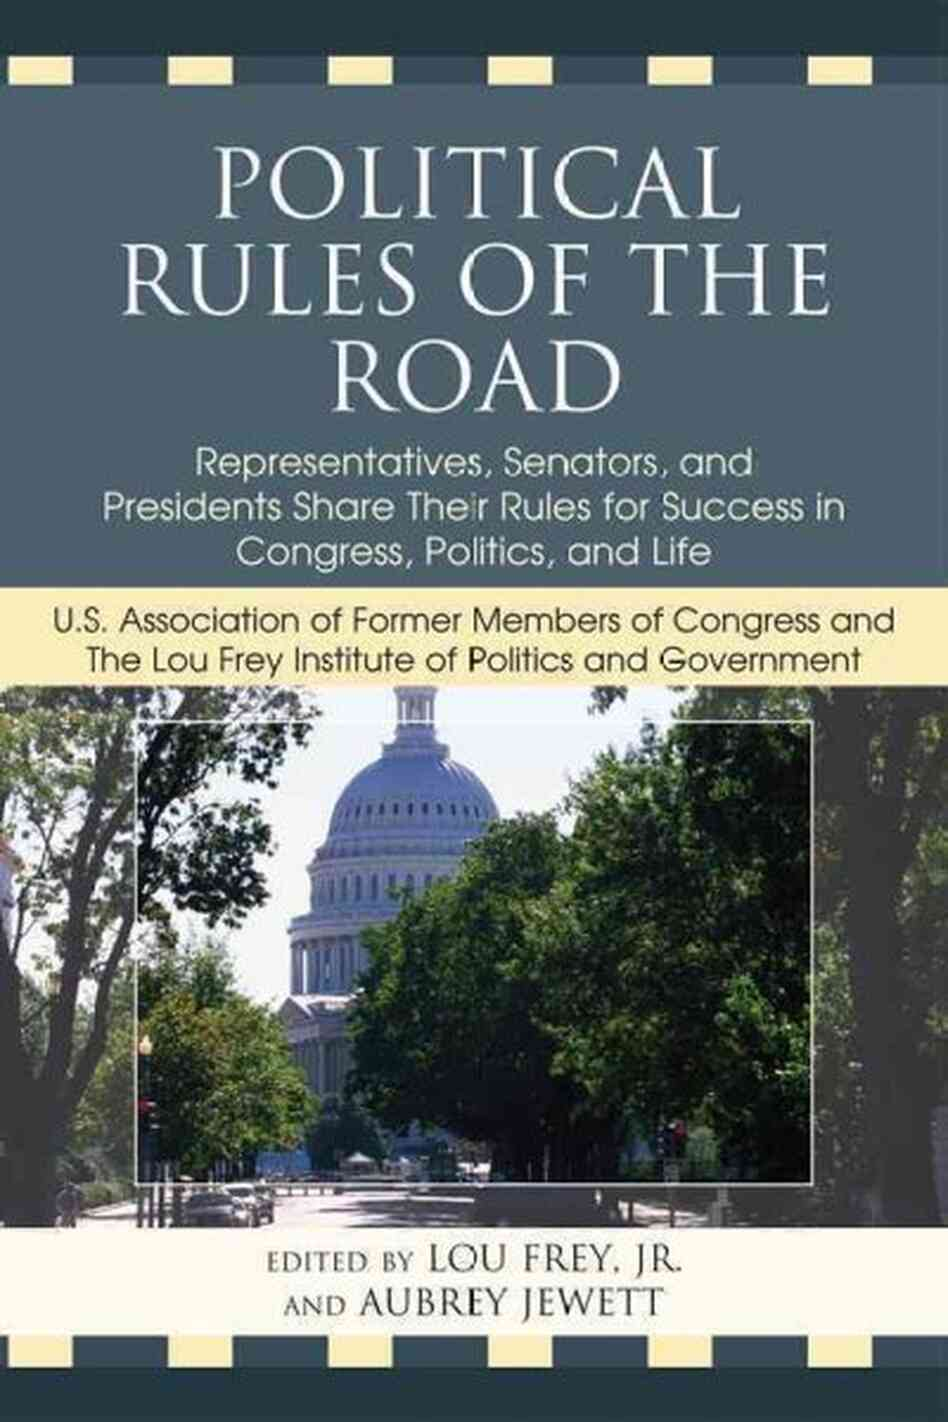 Political Rules of the Road